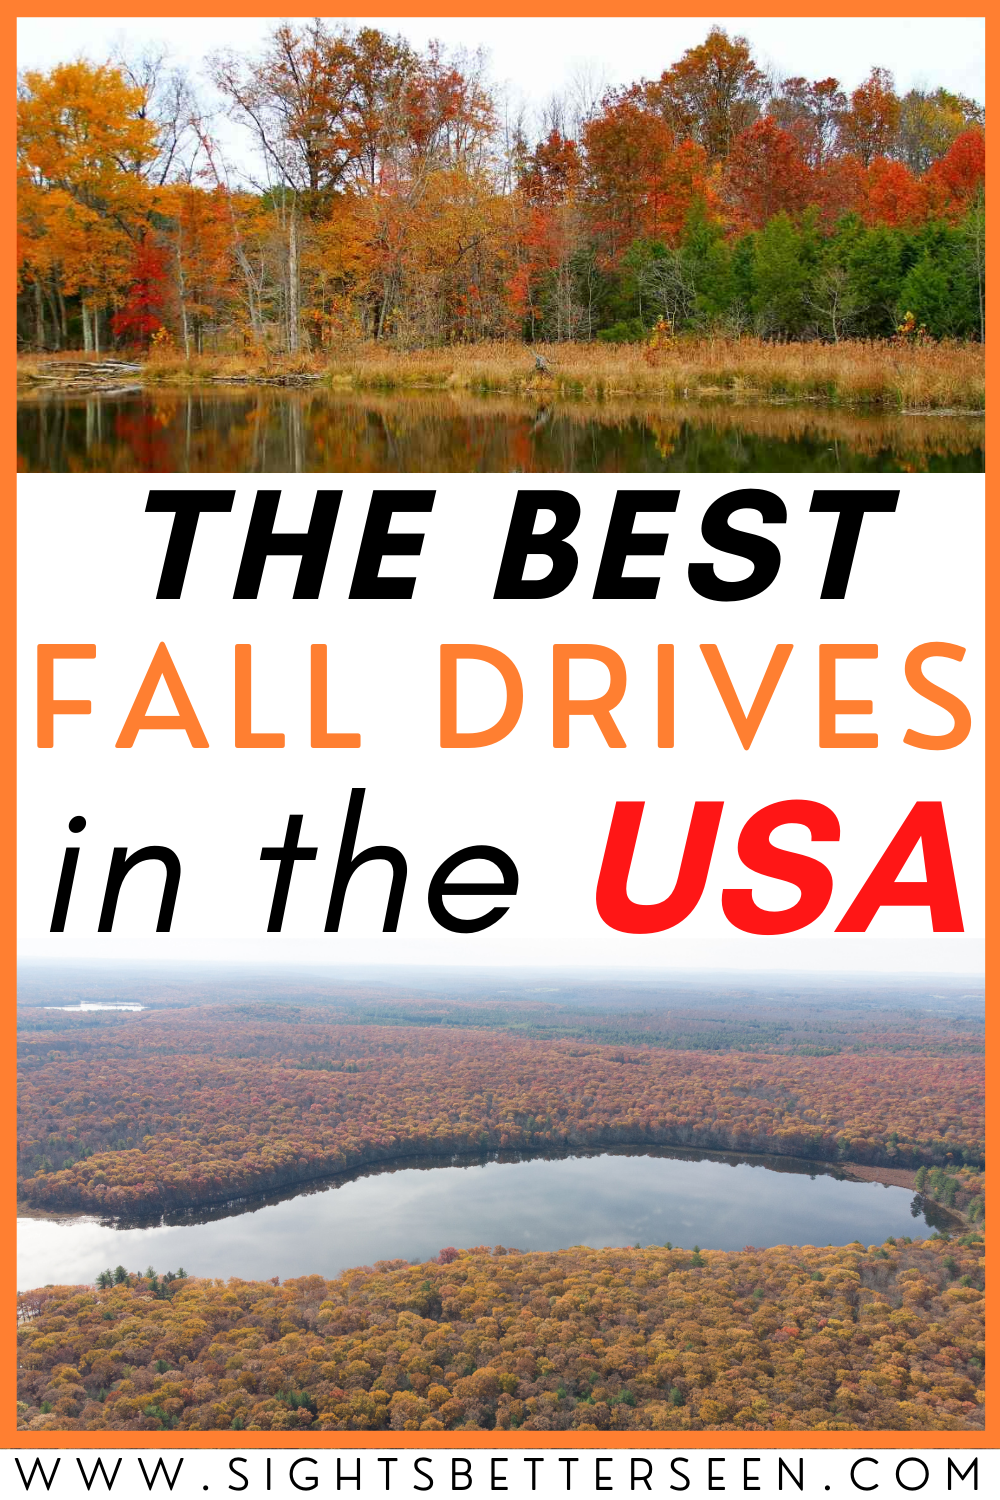 Fall colors in the Poconos mountains and along River Road